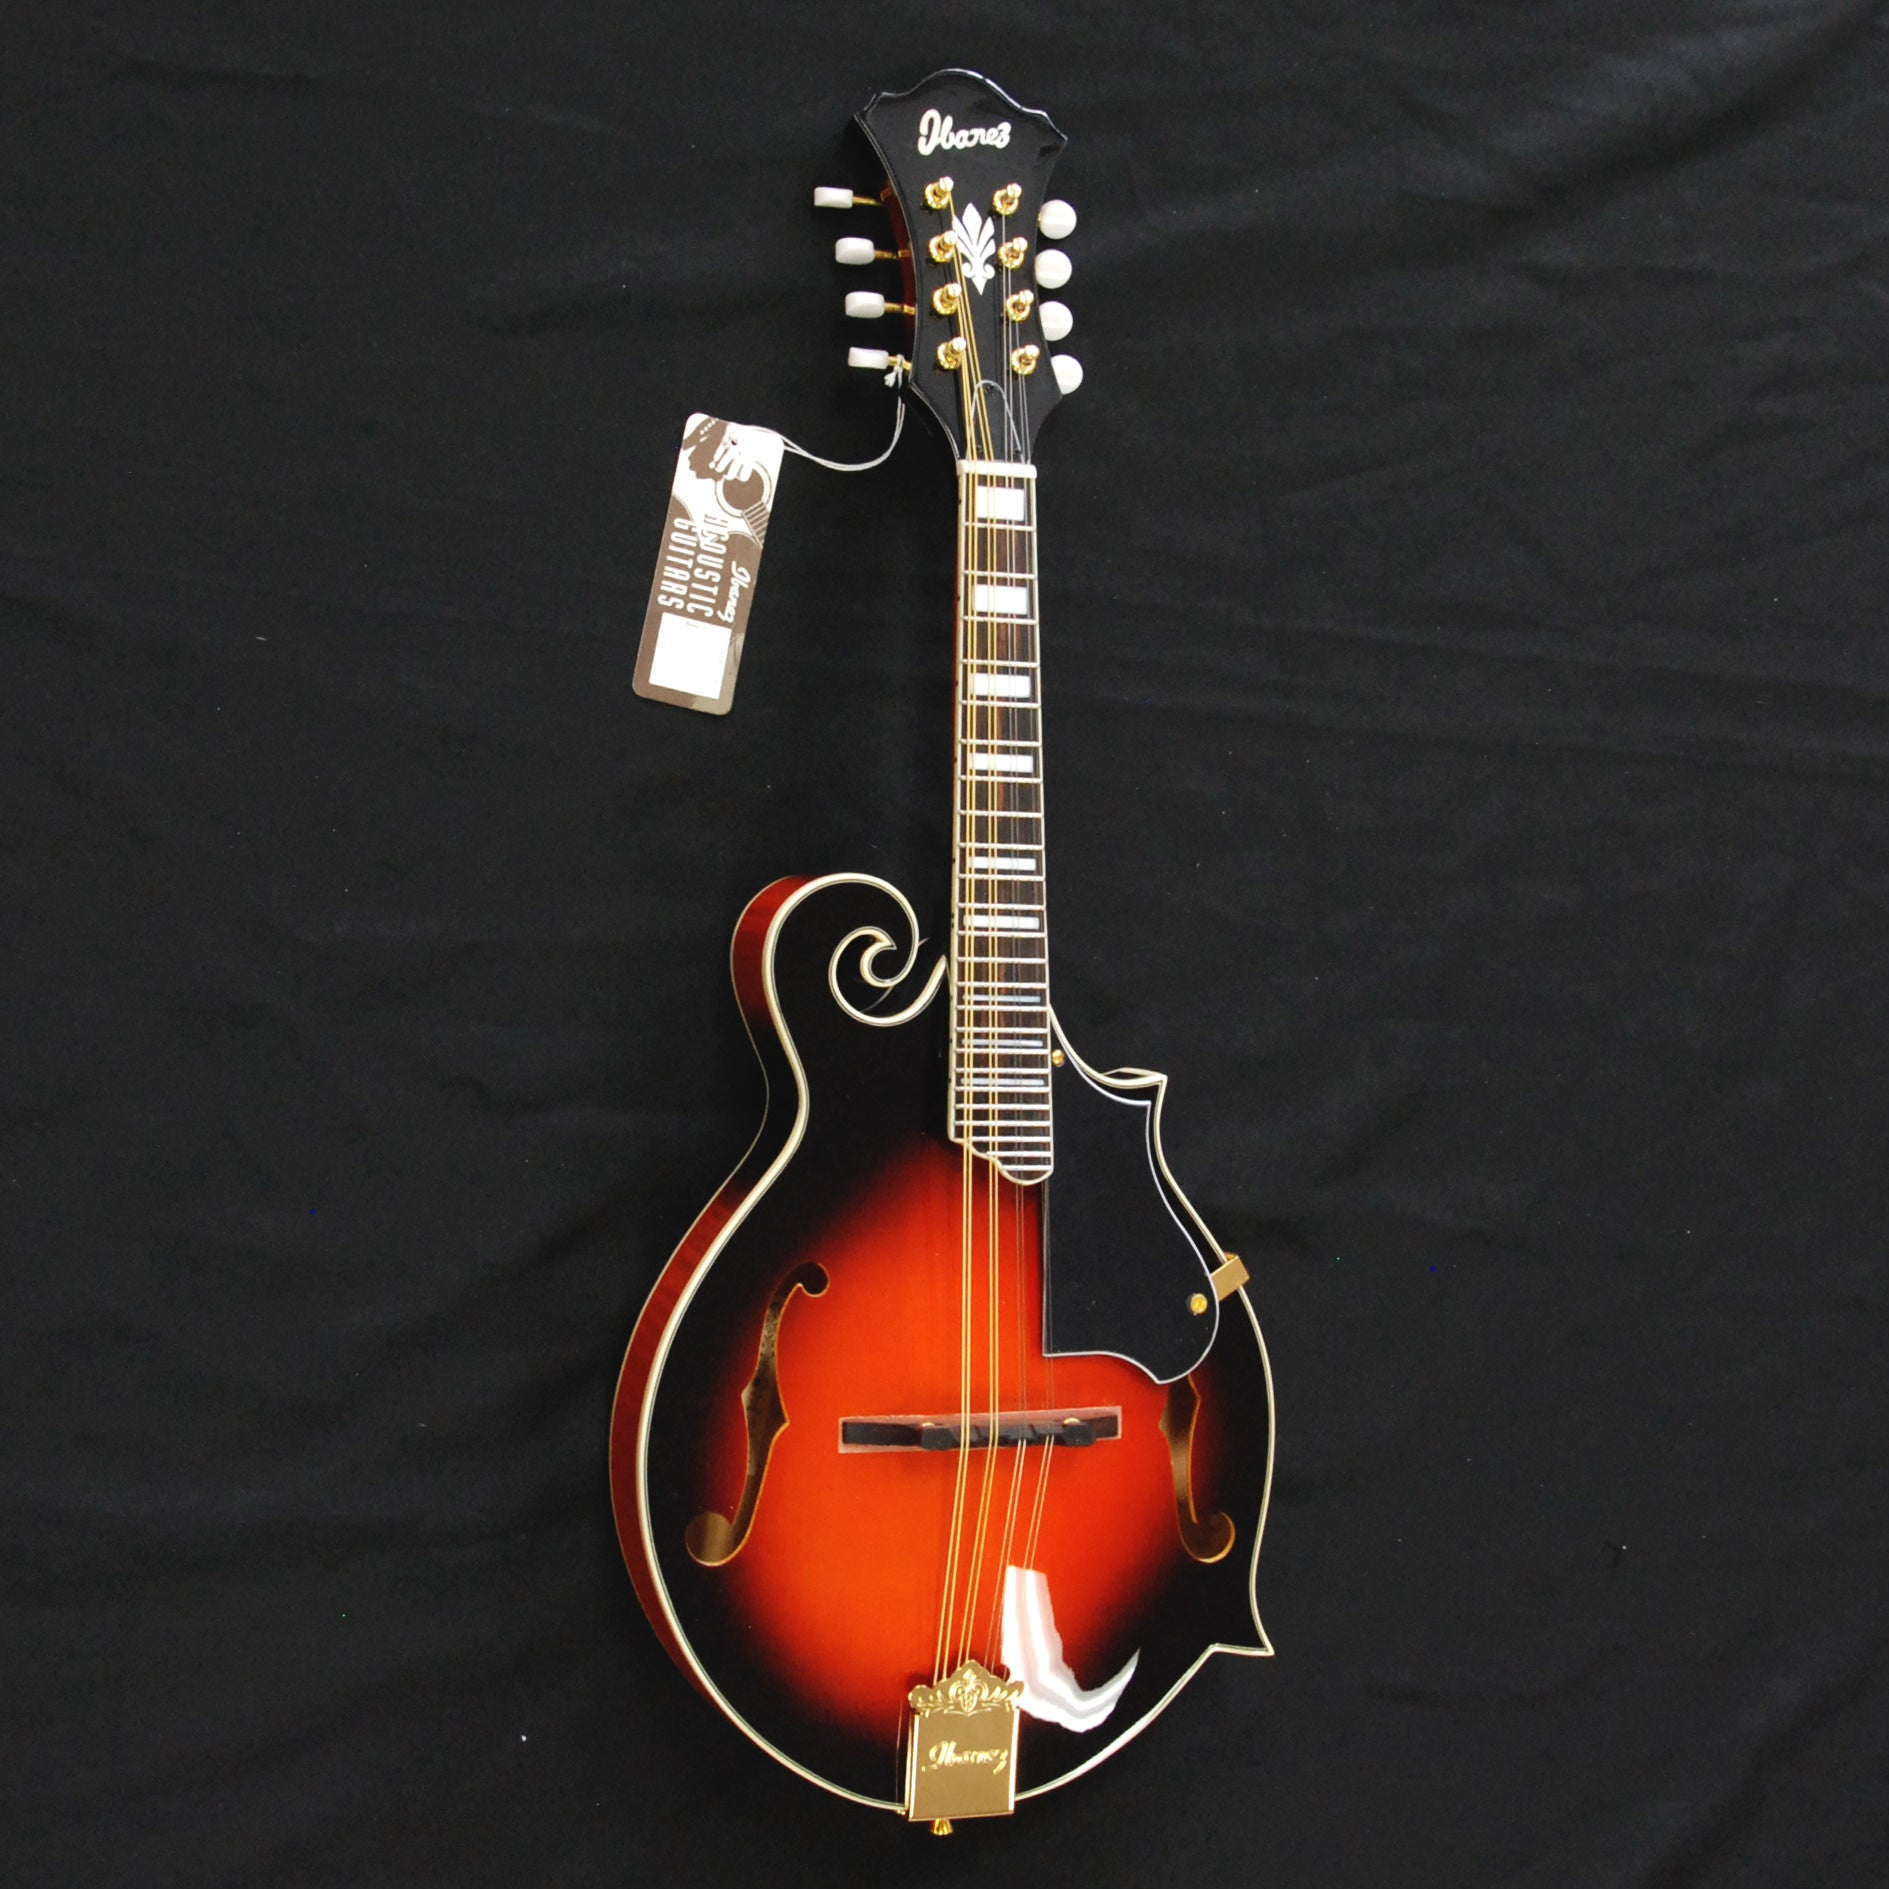 Shop online for Ibanez M522SBS F-Style Mandolin Brown Sunburst today.  Now available for purchase from Midlothian Music of Orland Park, Illinois, USA